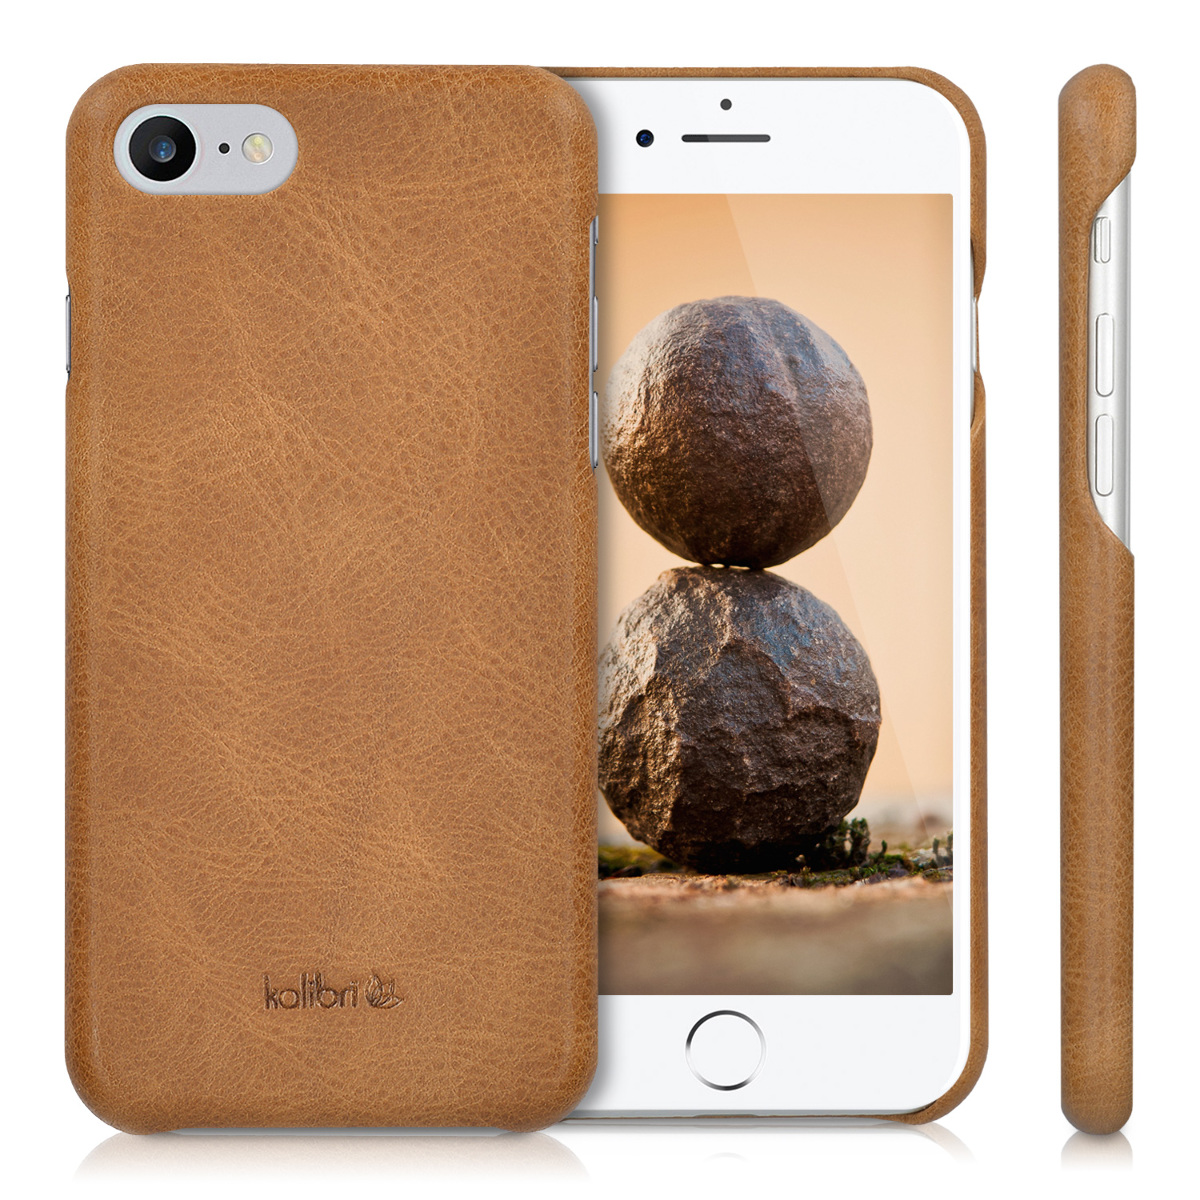 kalibri iphone 7 case